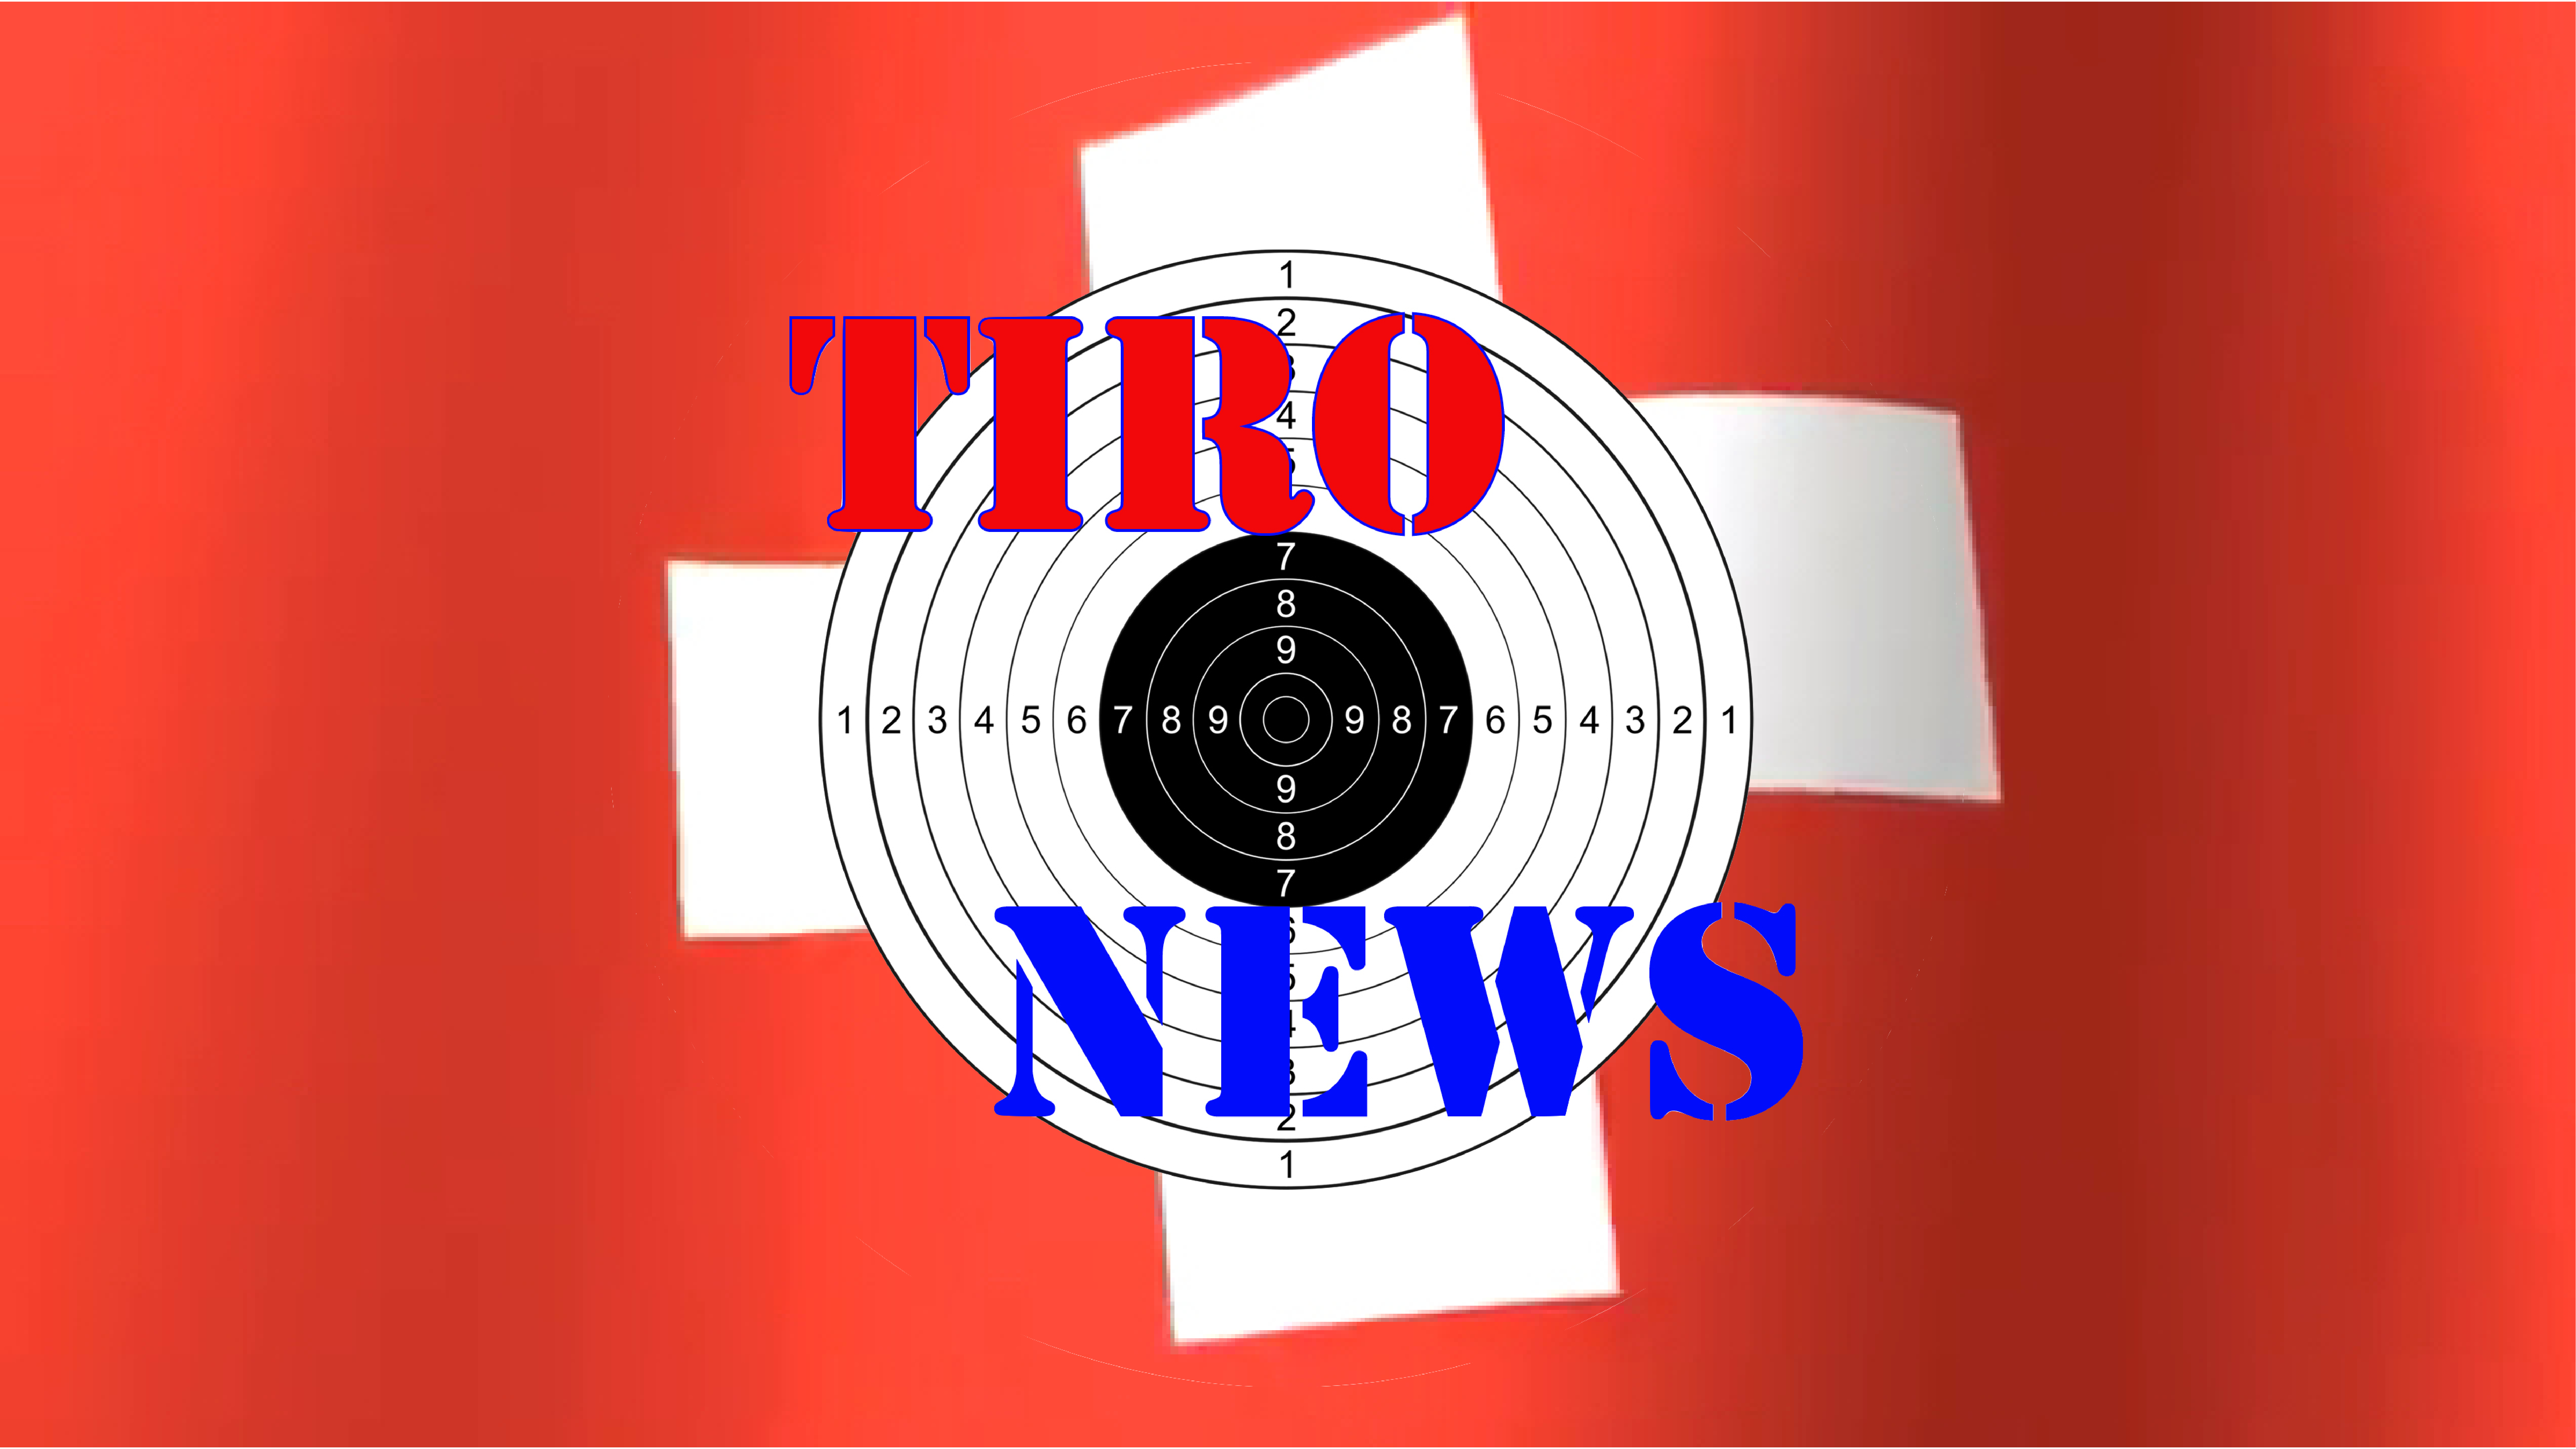 'Tiro News' category image